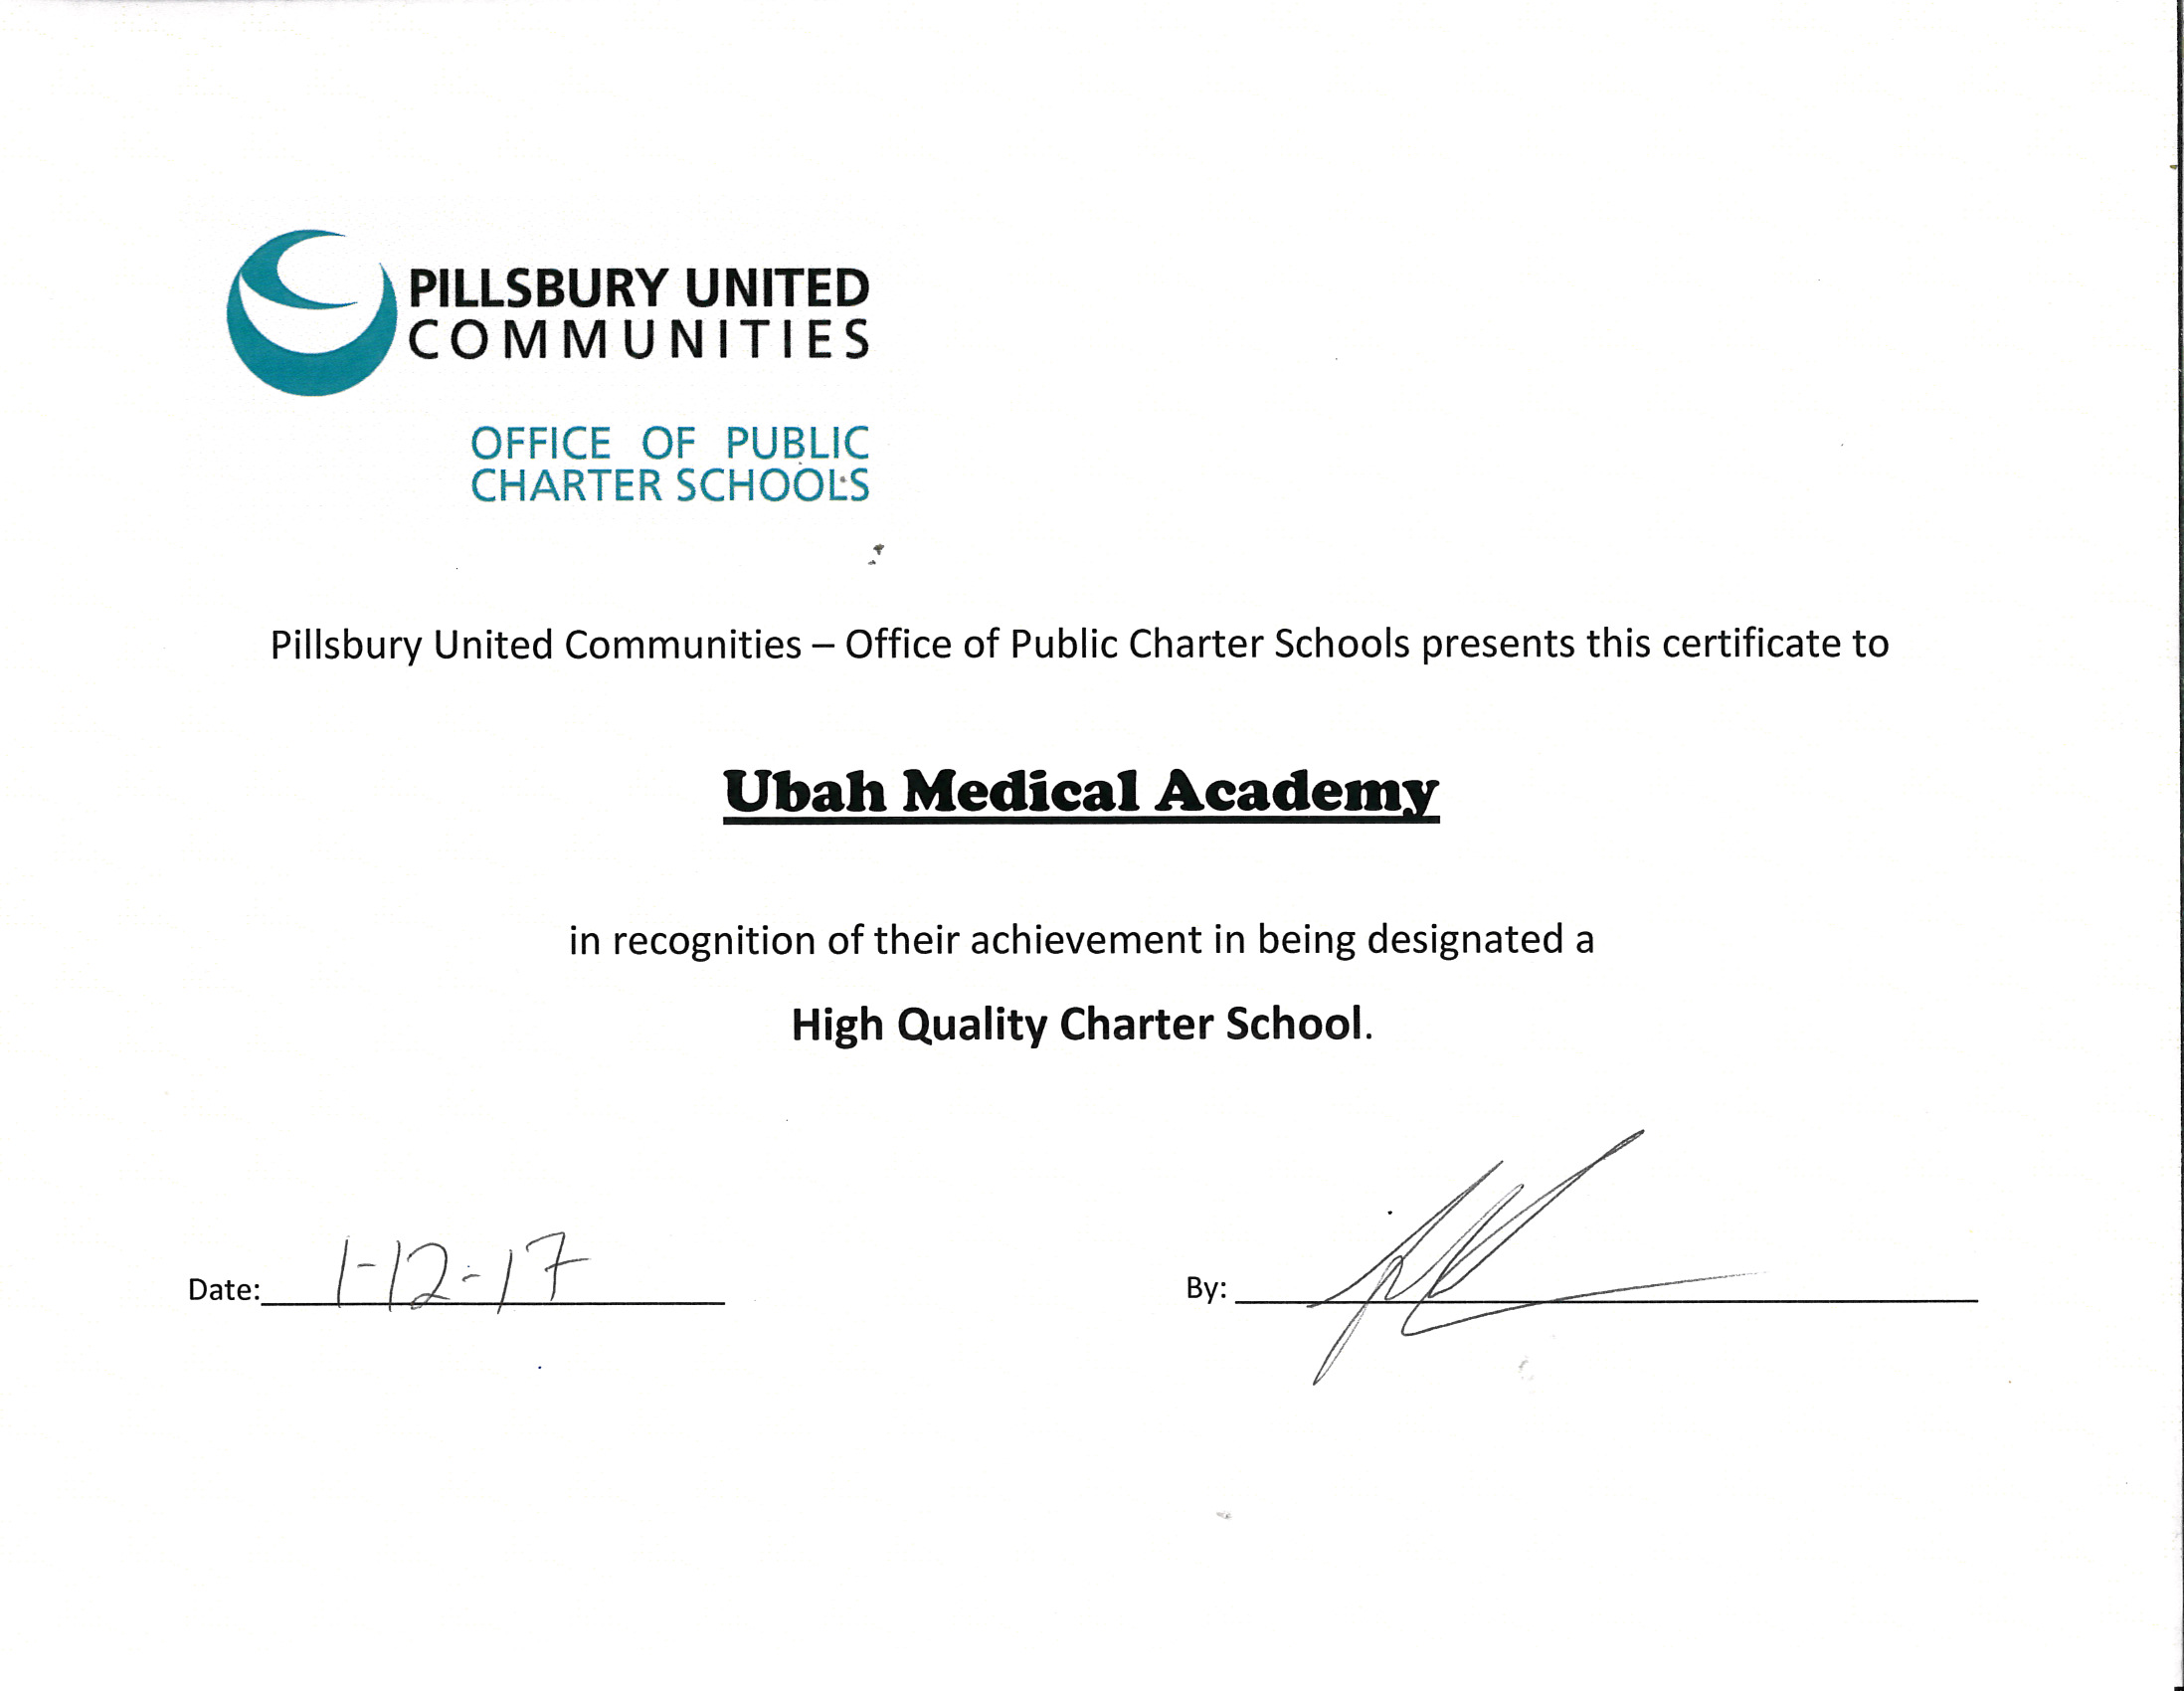 2017 High Quality Charter School Certificate